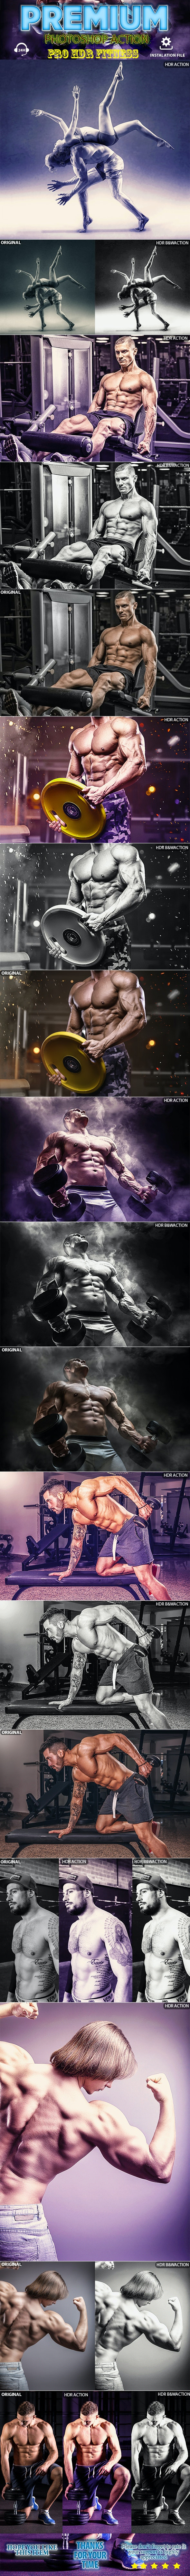 Fitness HDR Photoshop Action - Photo Effects Actions